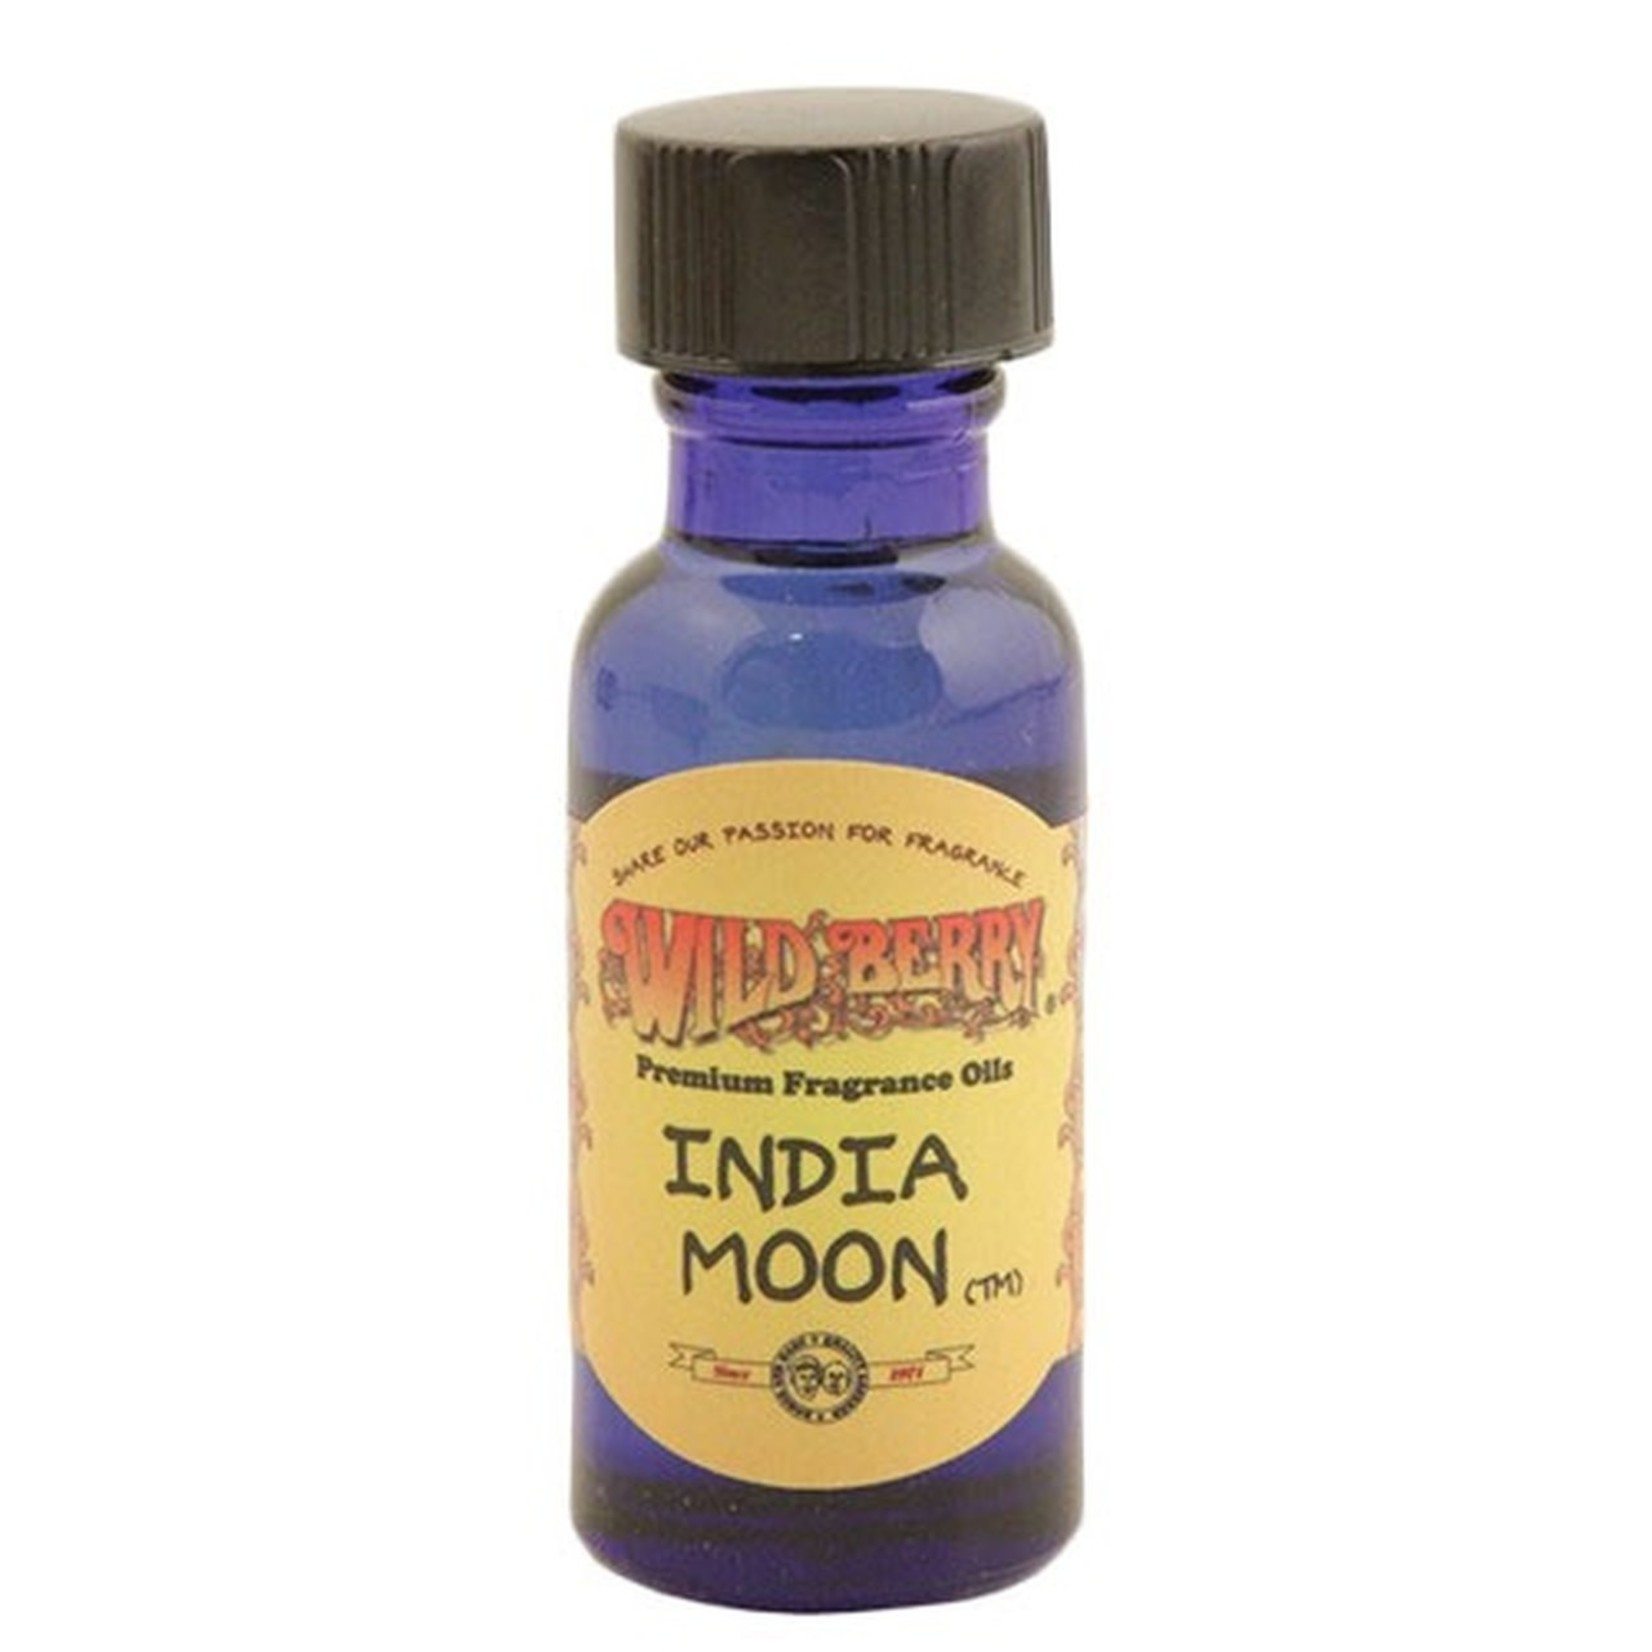 India Moon Fragrance Oil Wild Berry